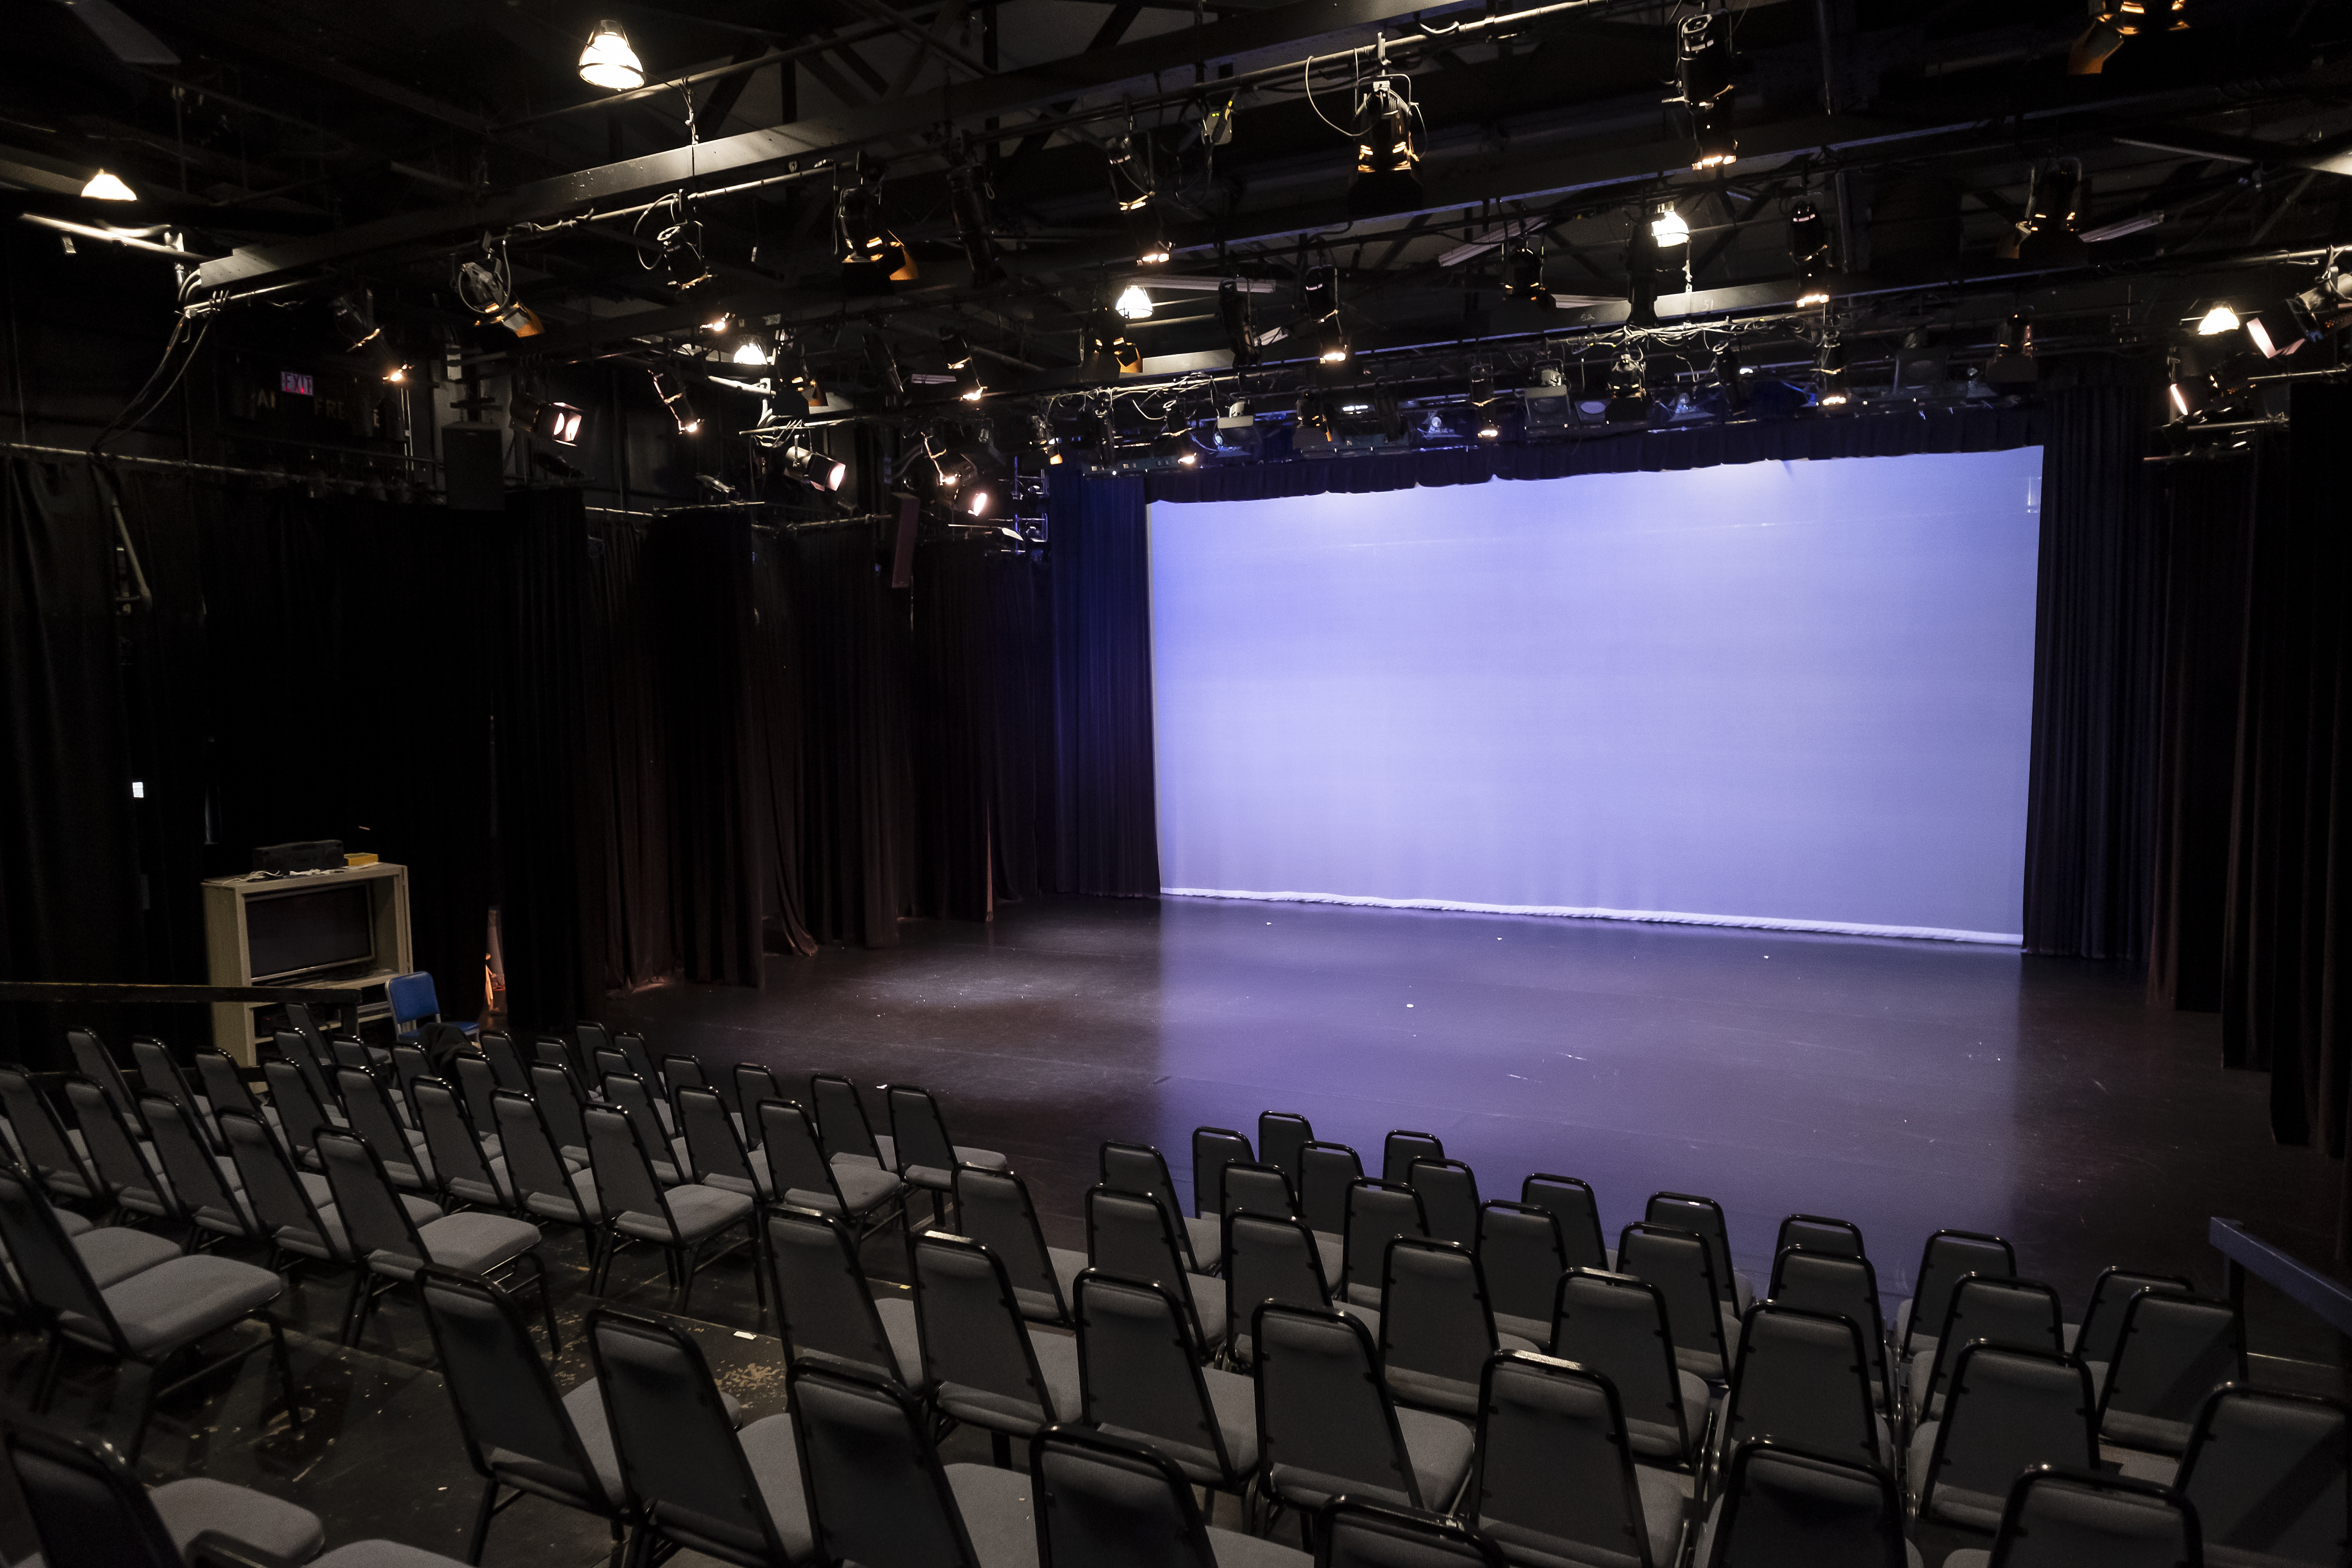 Black box theater with seating and blank screen on stage, lit with purple lights